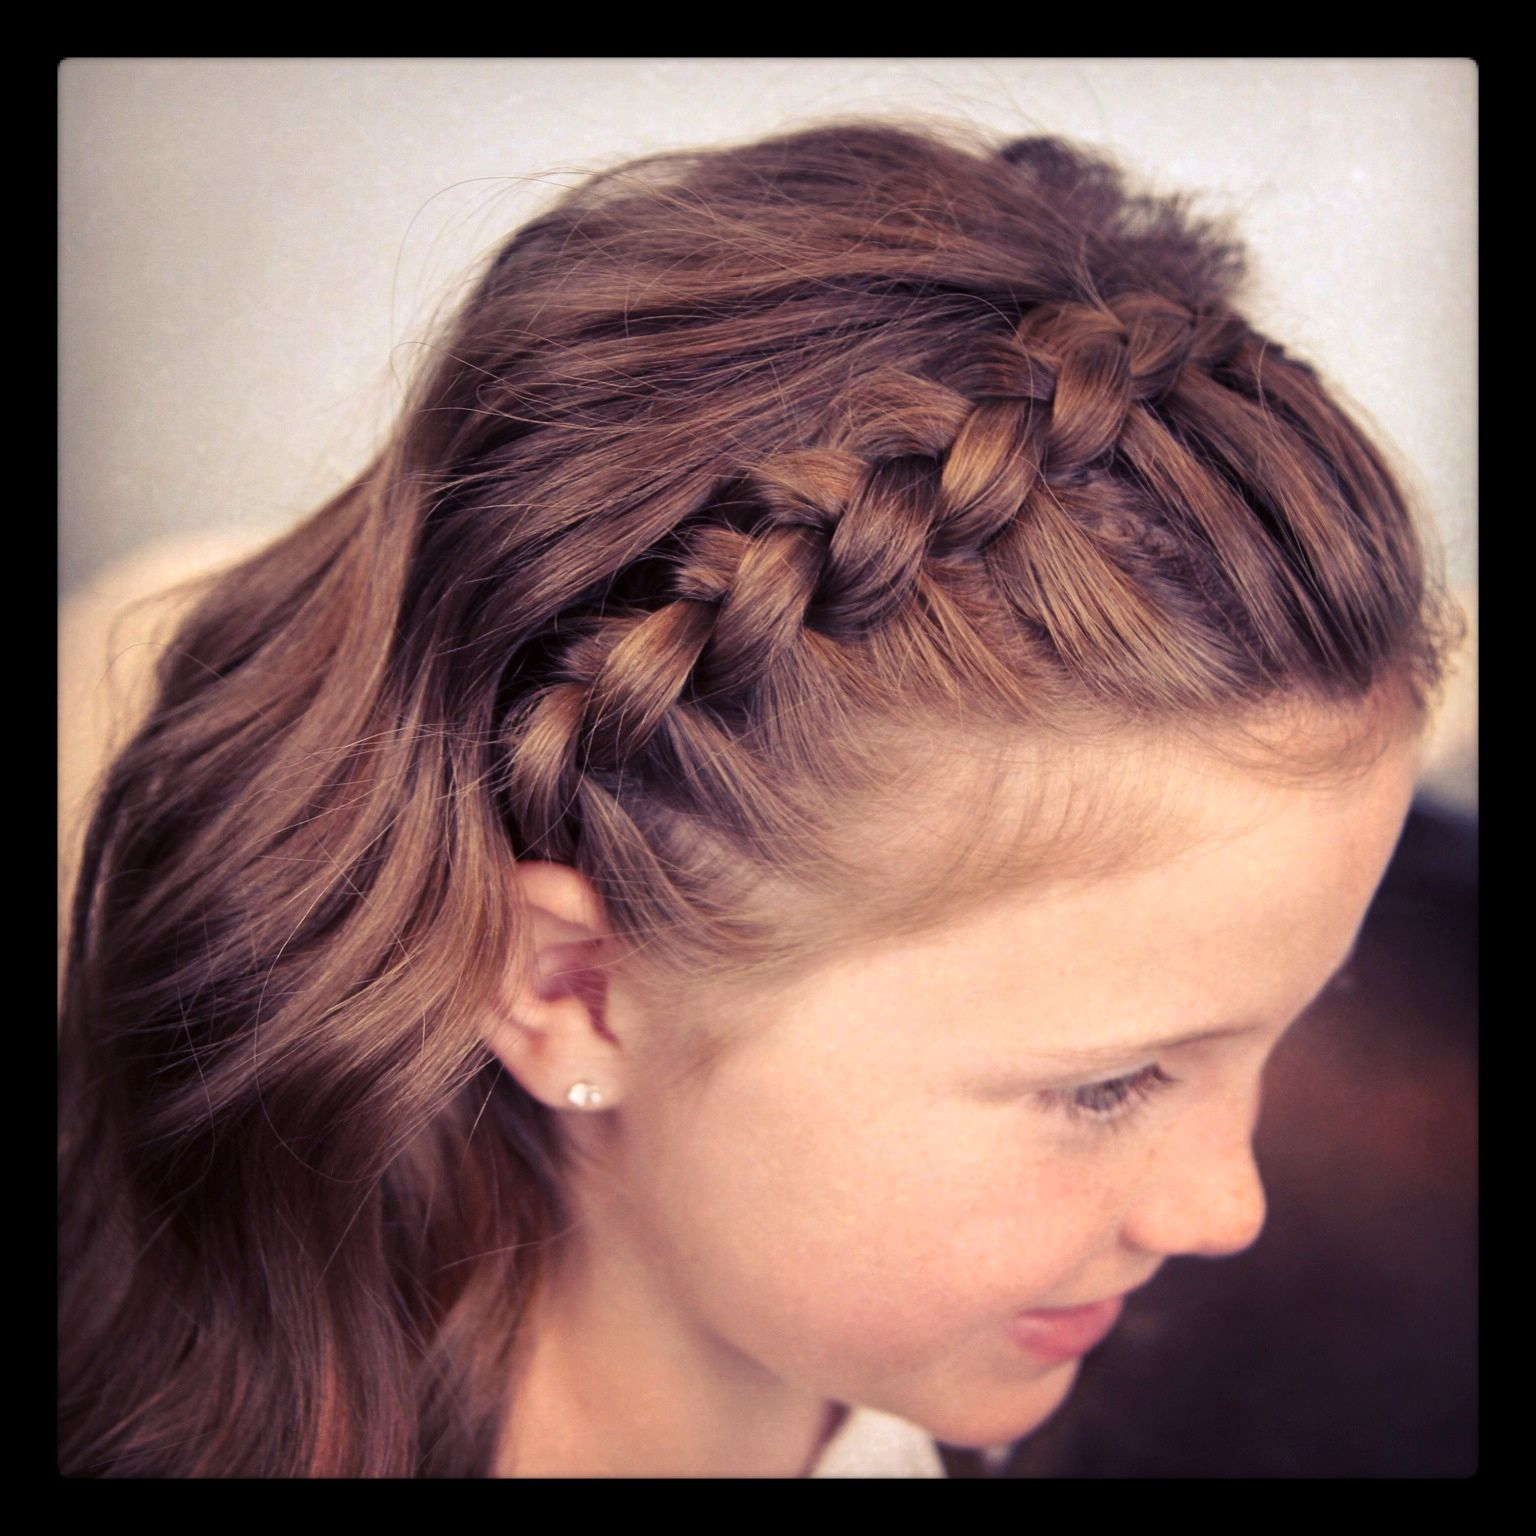 Dutch Lace Braided Headband | Braid Hairstyles | Cute Girls ...